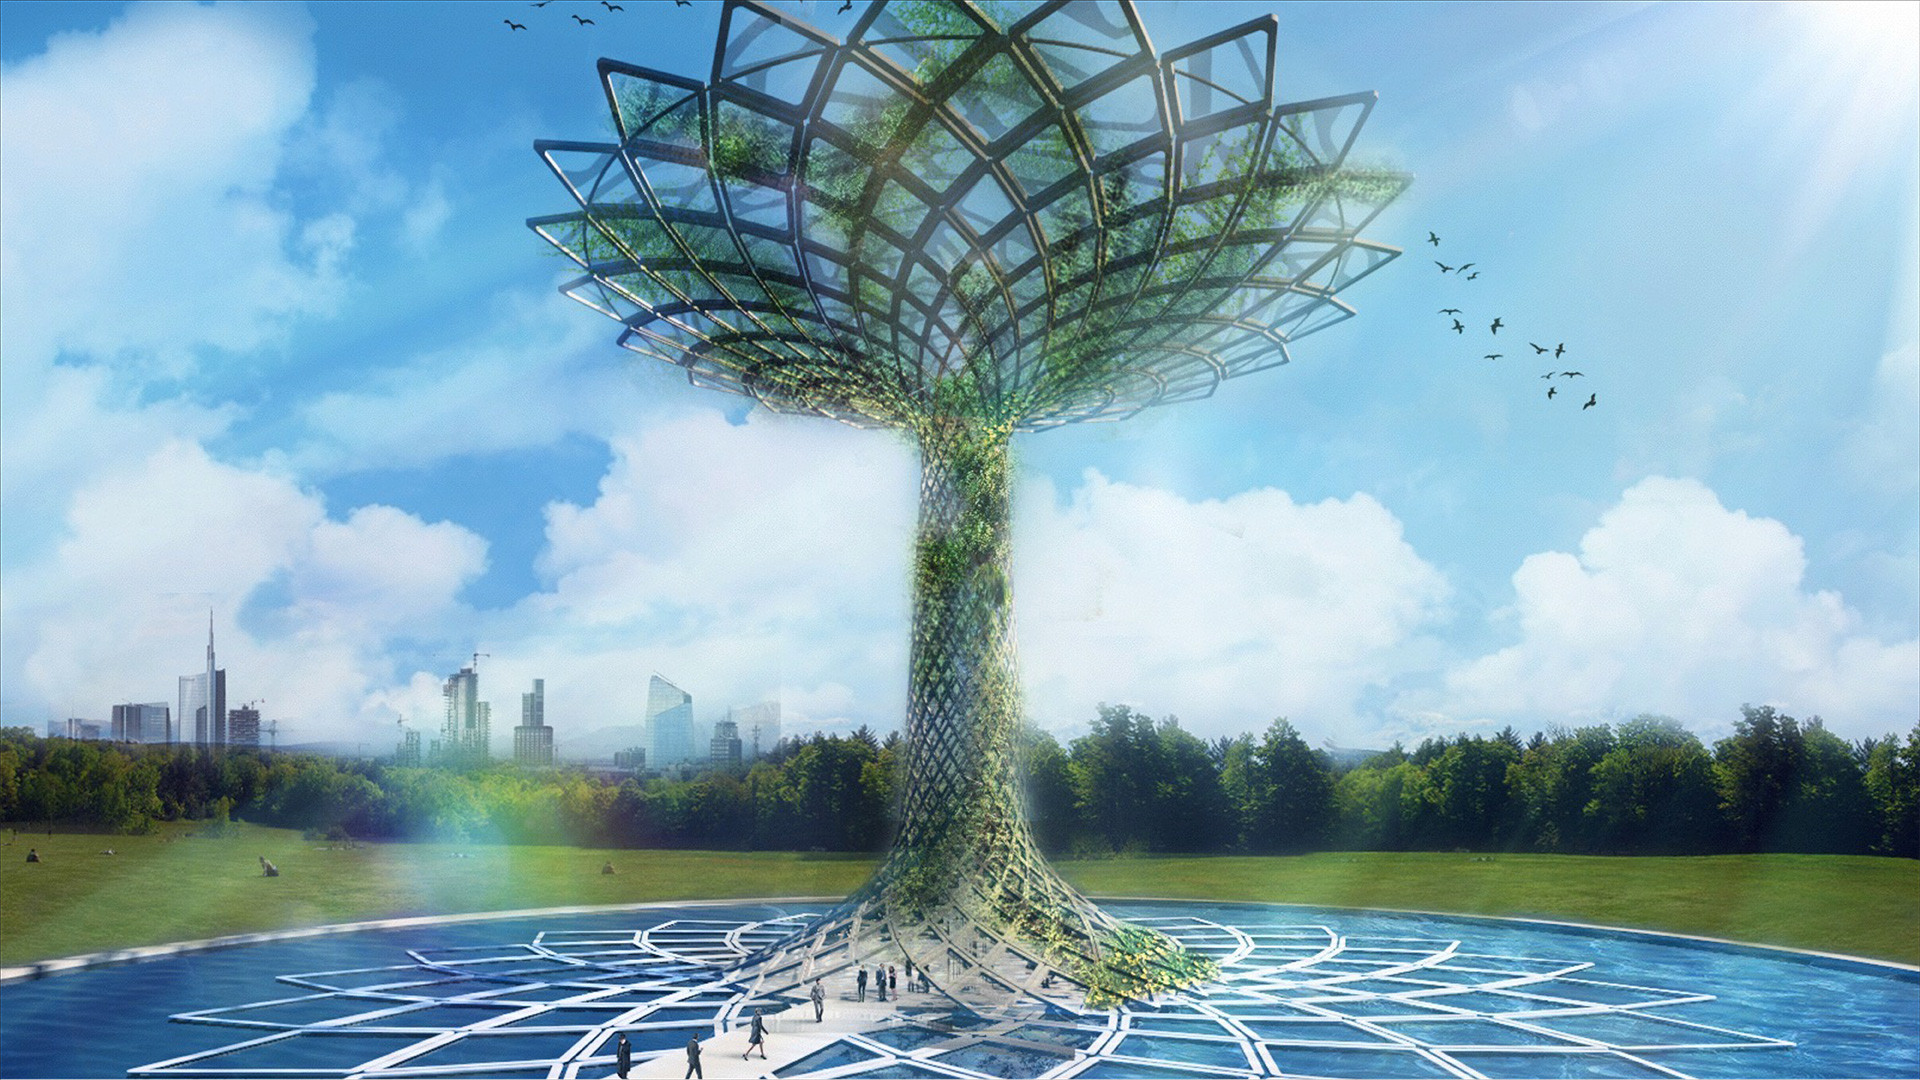 Wilkinson Eyre Claim Plagiarism At 2015 Milan Expo Site, The 'Tree of Life' at the 2015 Milan Expo's Italian Pavilion. Image © Marco Balich / Studio Gio' Forma